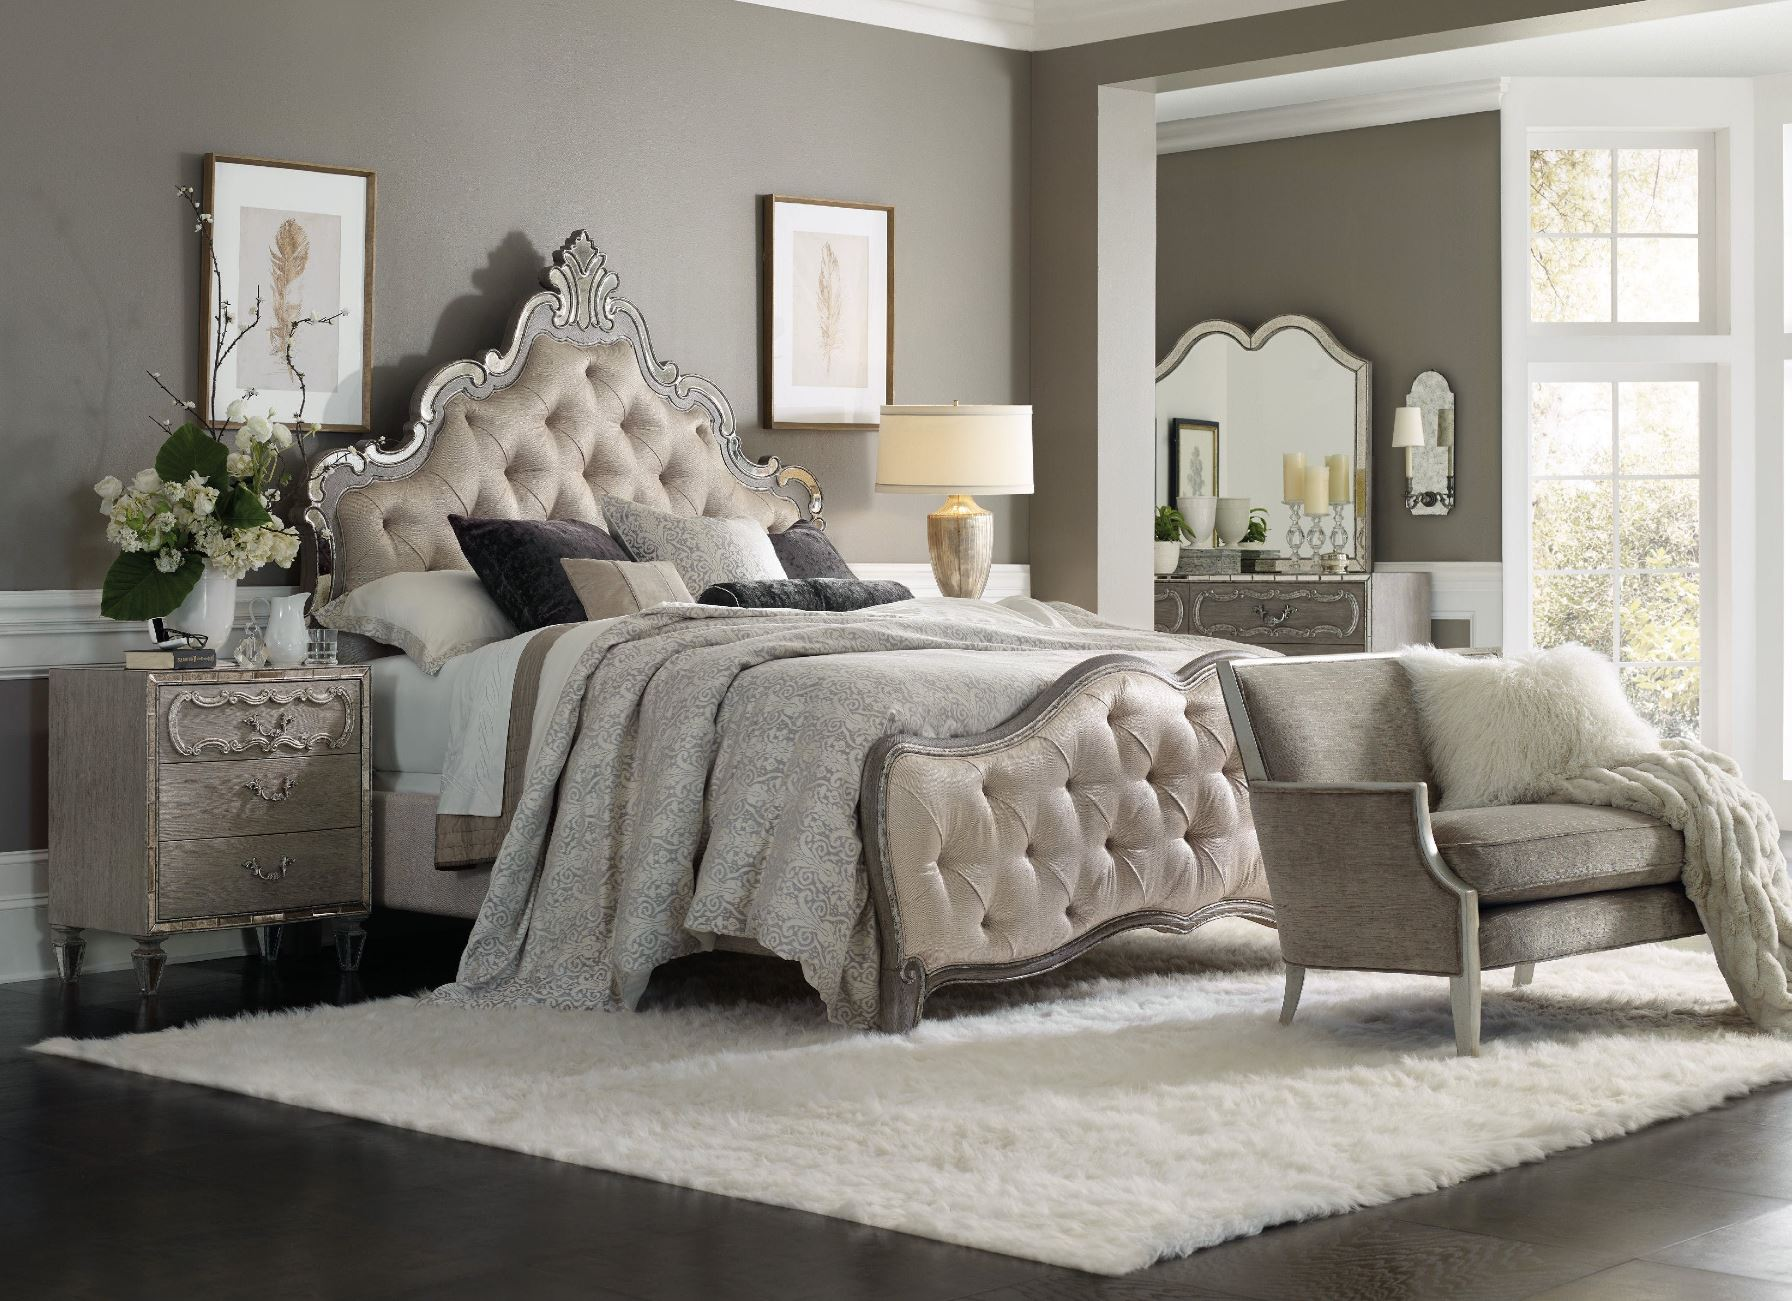 Hooker Furniture Sanctuary King Upholstered Bedroom Set